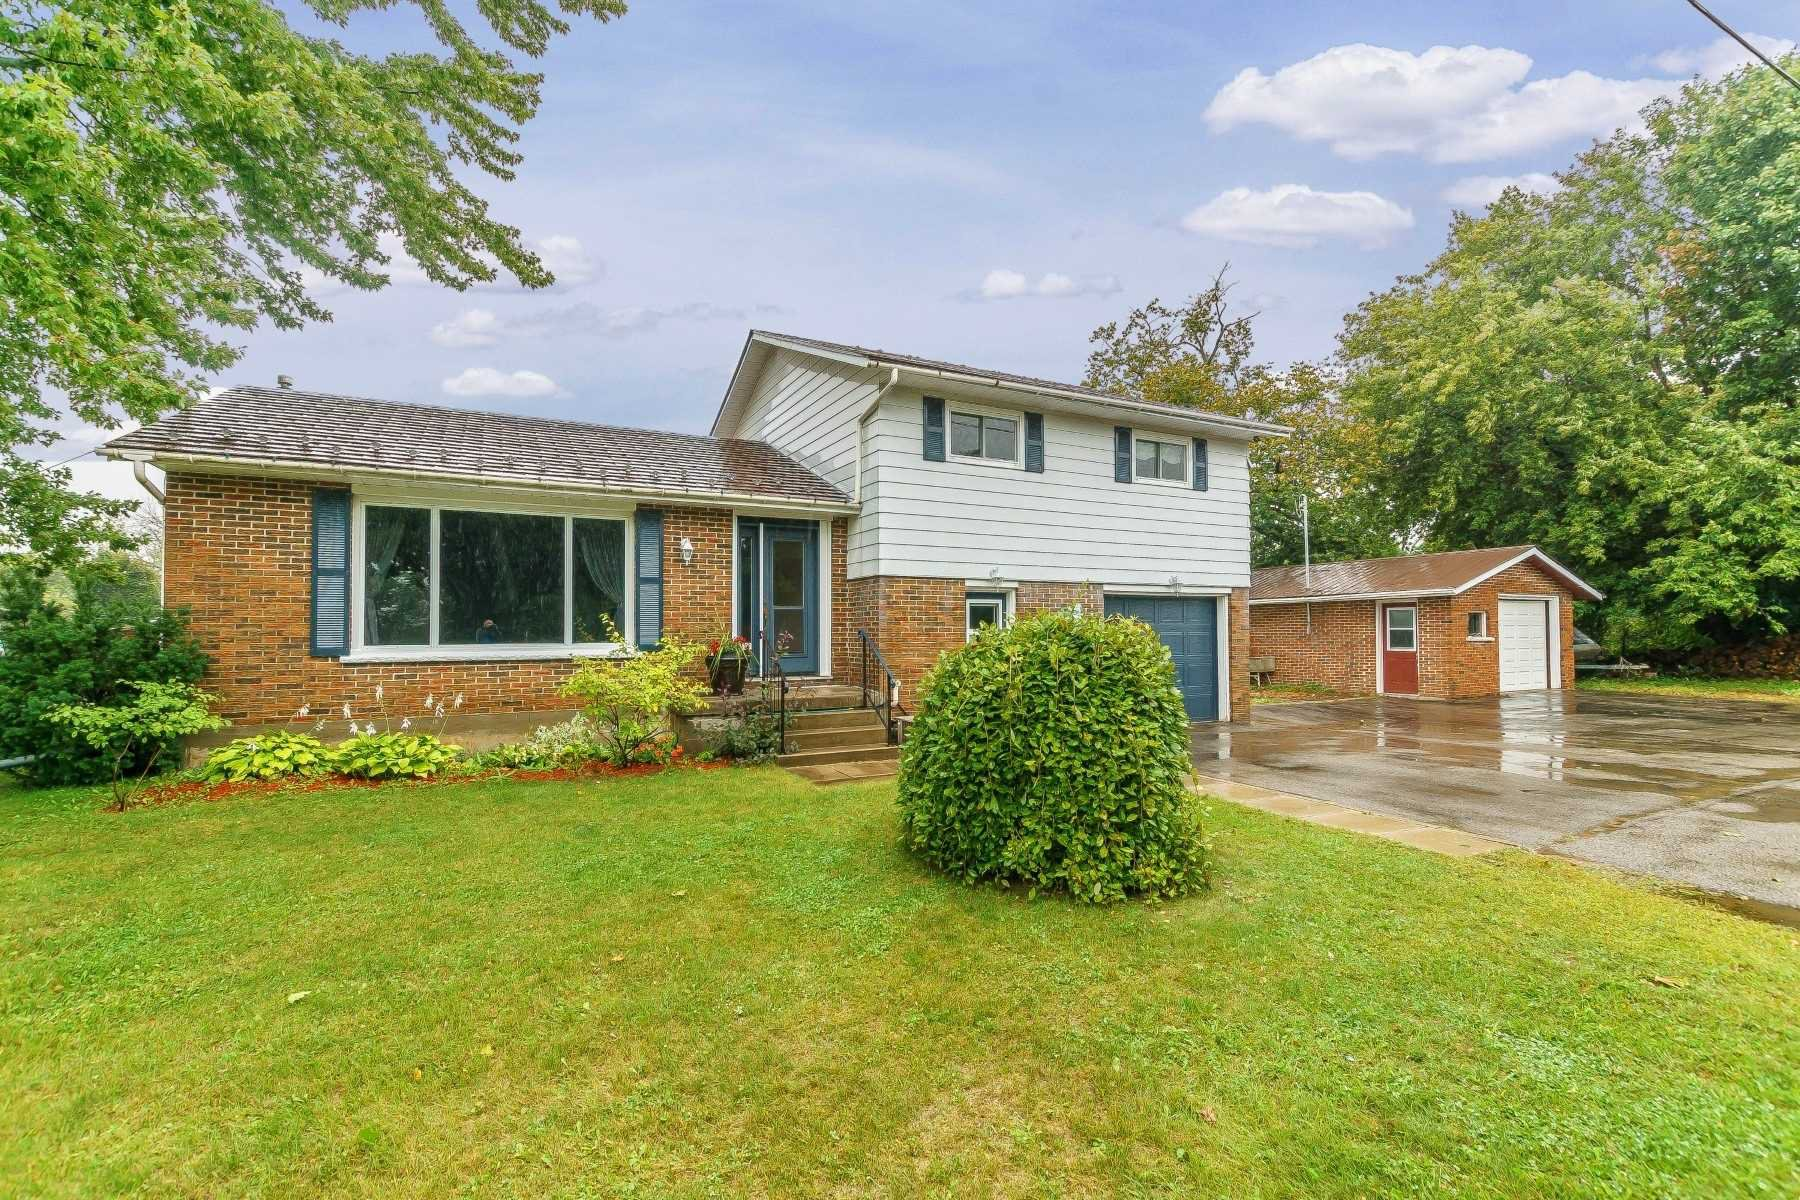 Main Photo: 190 N Church Street in Clarington: Orono House (Sidesplit 4) for sale : MLS®# E4463047